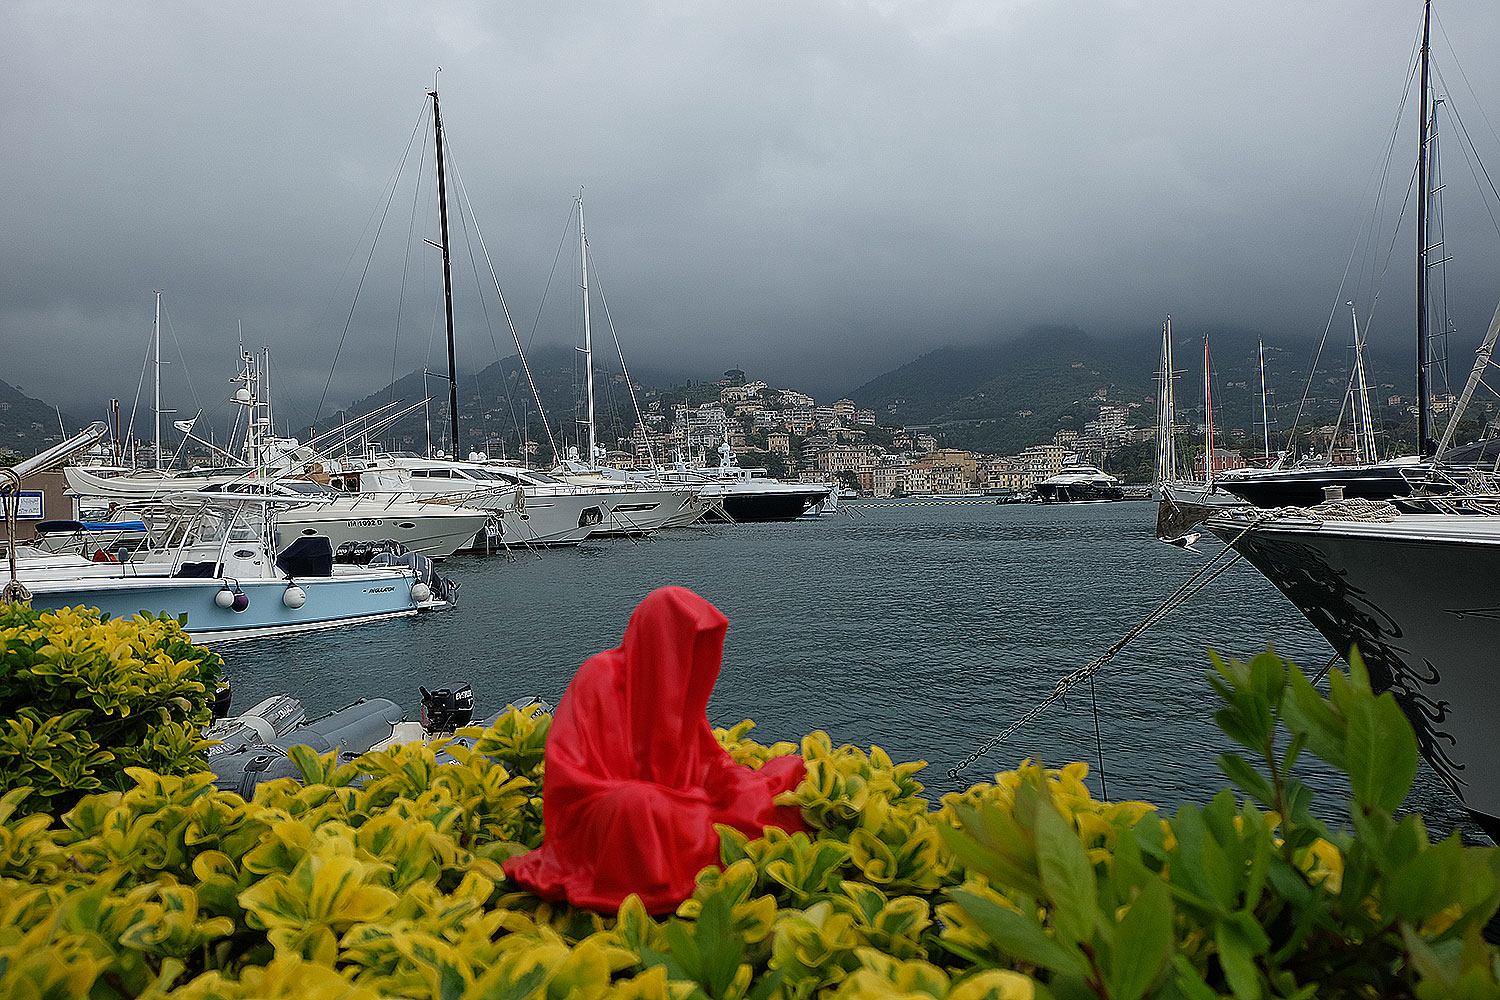 guardians-of-time-manfred-kili-kielnhofer-contemporary-fine-art-sculpture-tour-italy-genova-rapallo-portofino-see-cost-2406